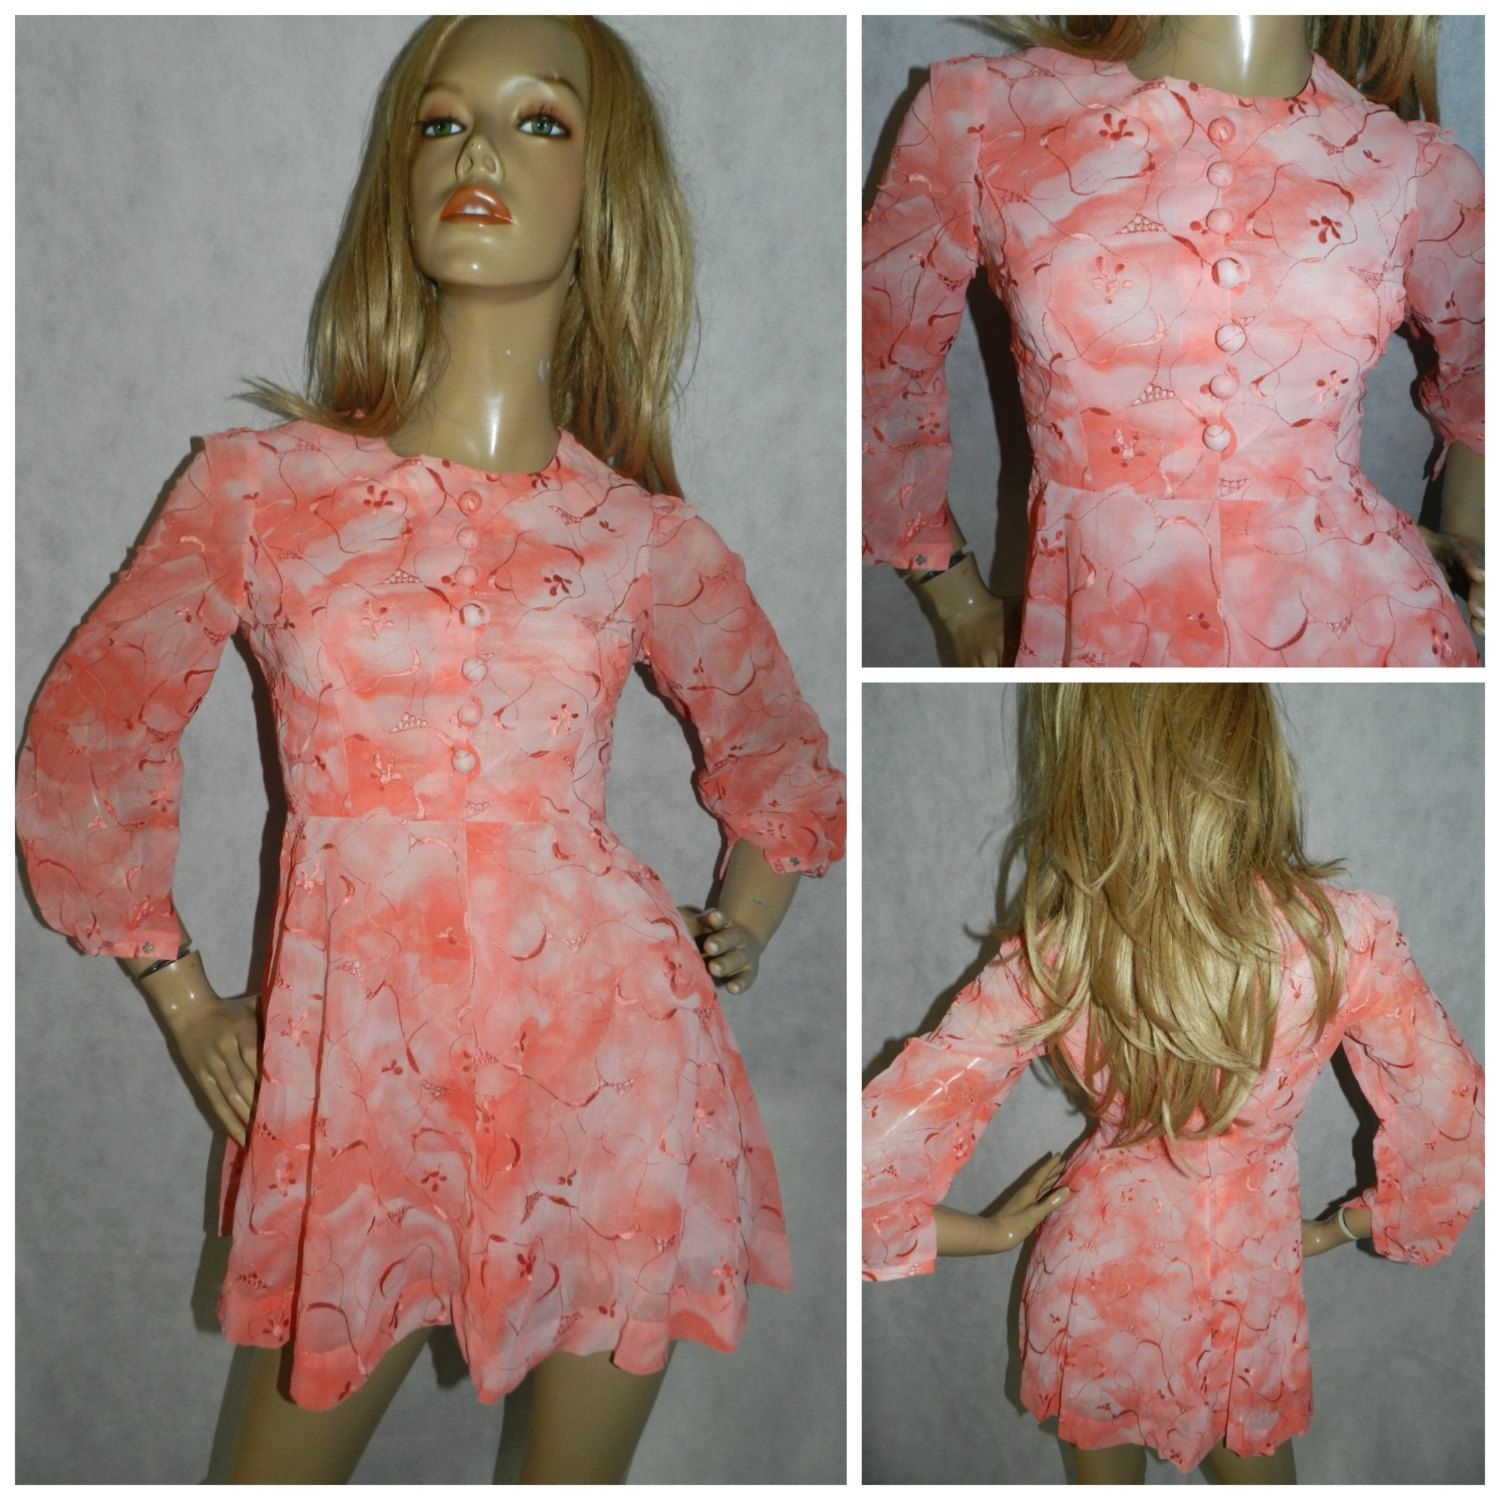 Vintage 60s PEACHY PINK Two tone Embroidered Cutwork Dolly MOD mini Gogo dress 8 Xs 1960s Kitsch Scooter by HoneychildLoves on Etsy